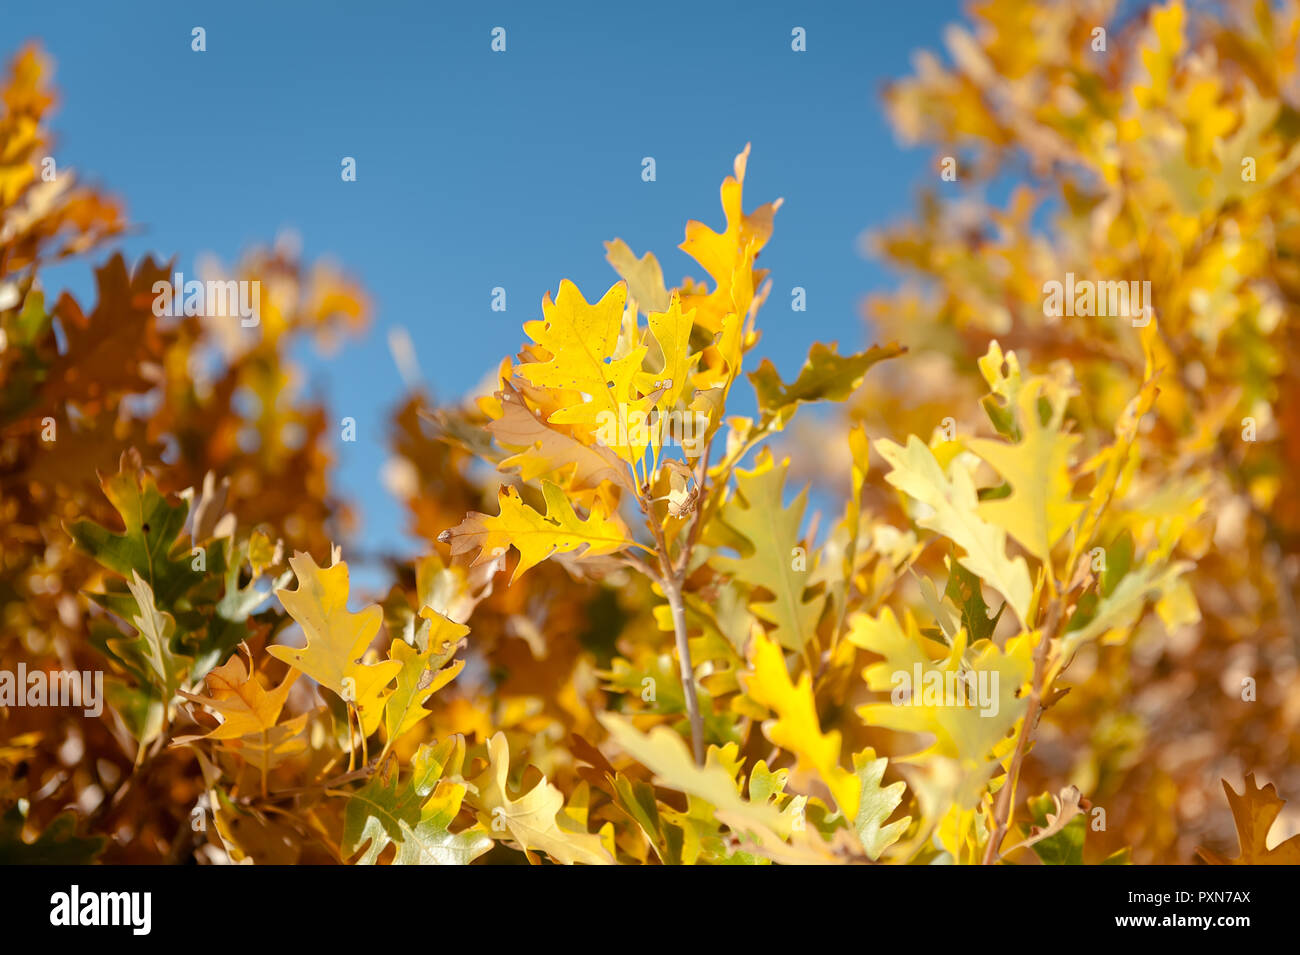 Yellow autumn leaves against blue sky. - Stock Image